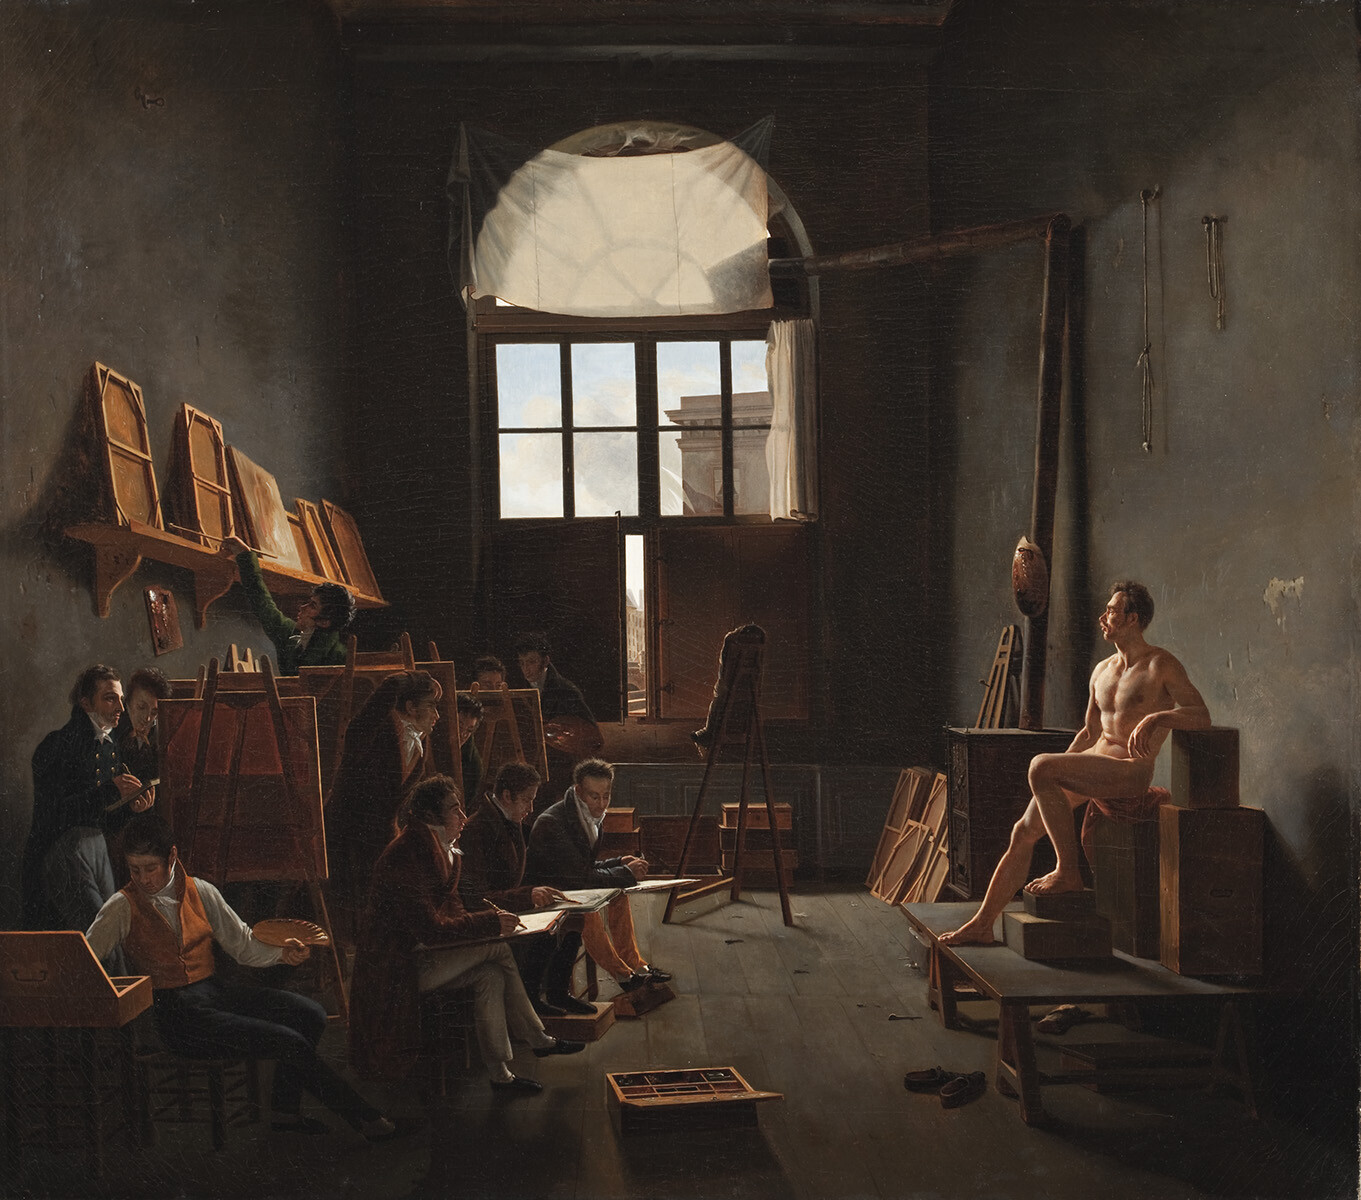 This painting depicts Jacques-Louis David's studio at the beginning of the 19th Century.  When King Louis the 14th moved the capitol of France to Versailles in 1682 the Louvre essentially became a residence for artists or the Royal Academy.